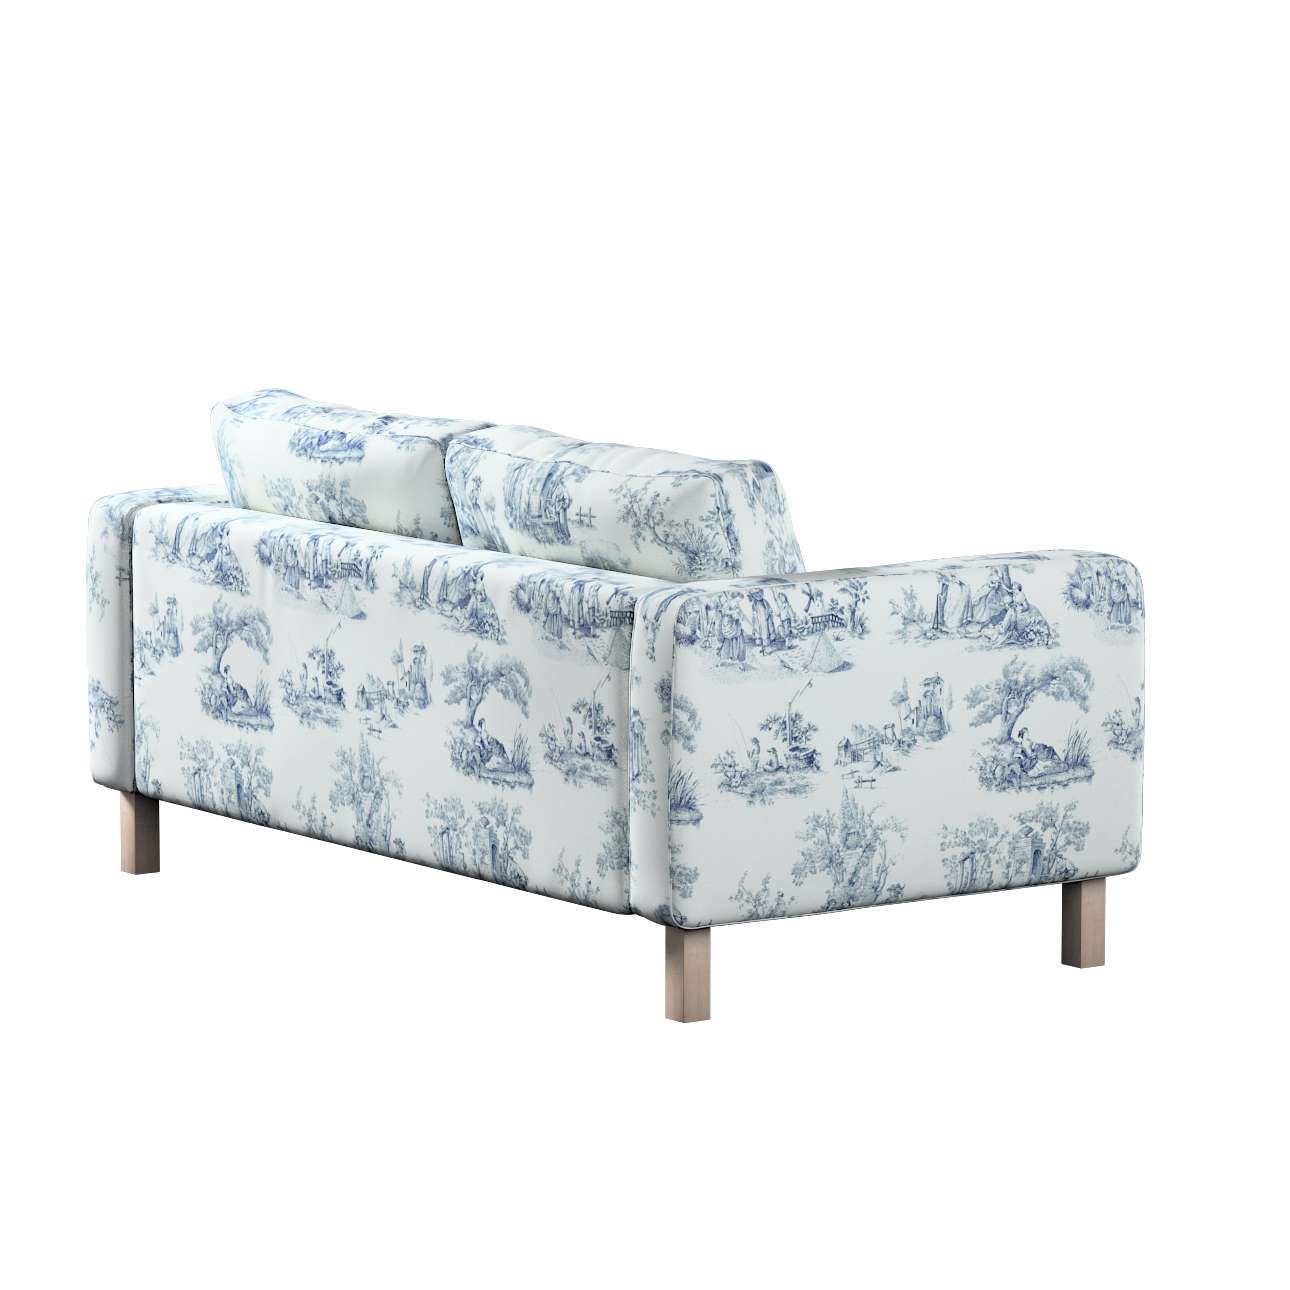 Karlstad 2-seater sofa cover in collection Avinon, fabric: 132-66